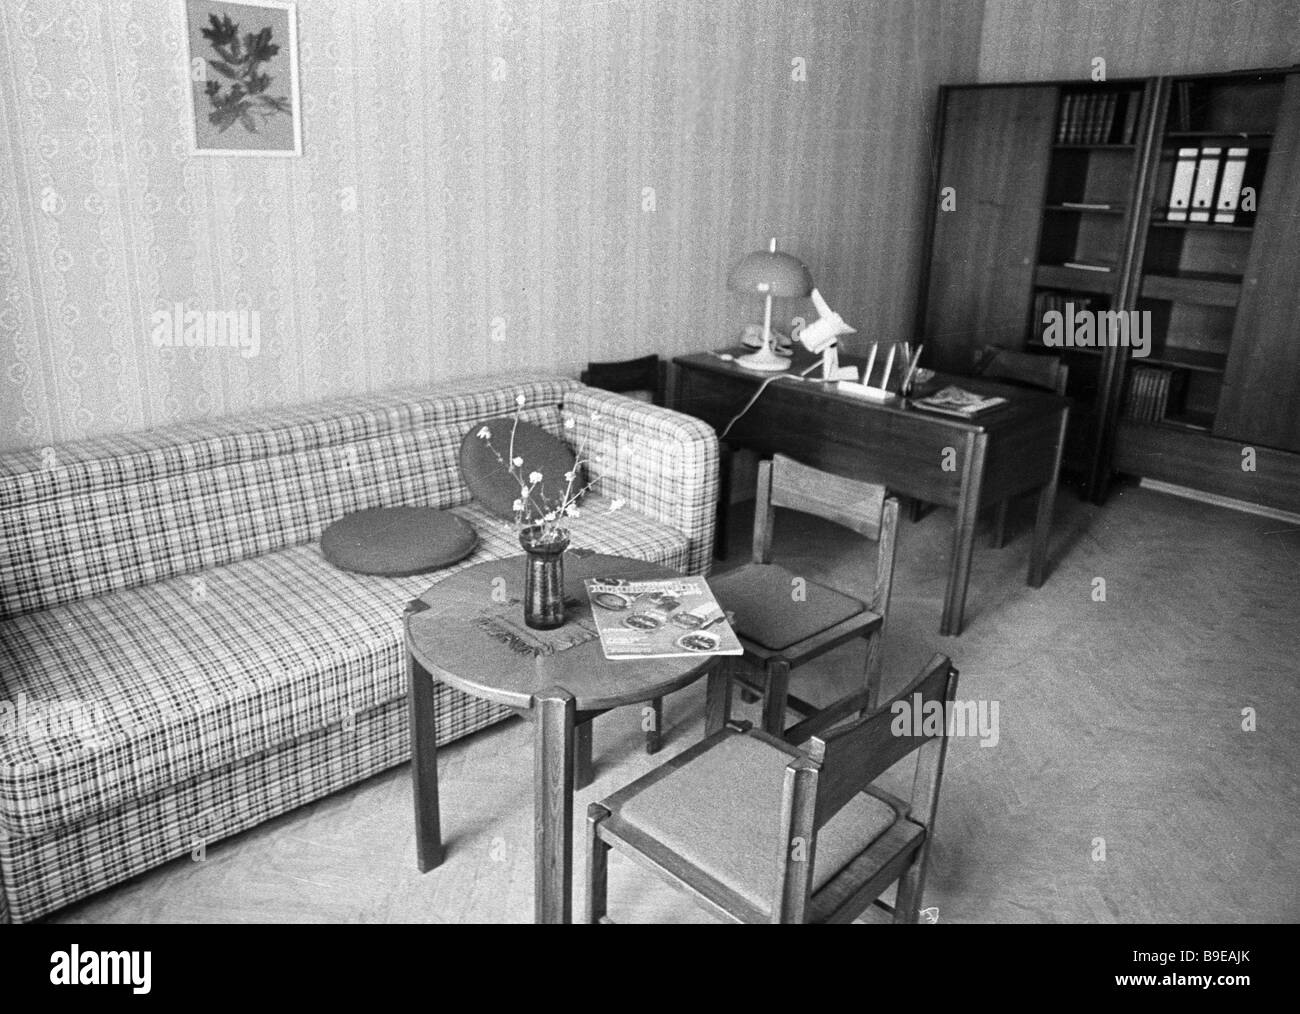 Olympic village room occupied by the head of the delegation - Stock Image